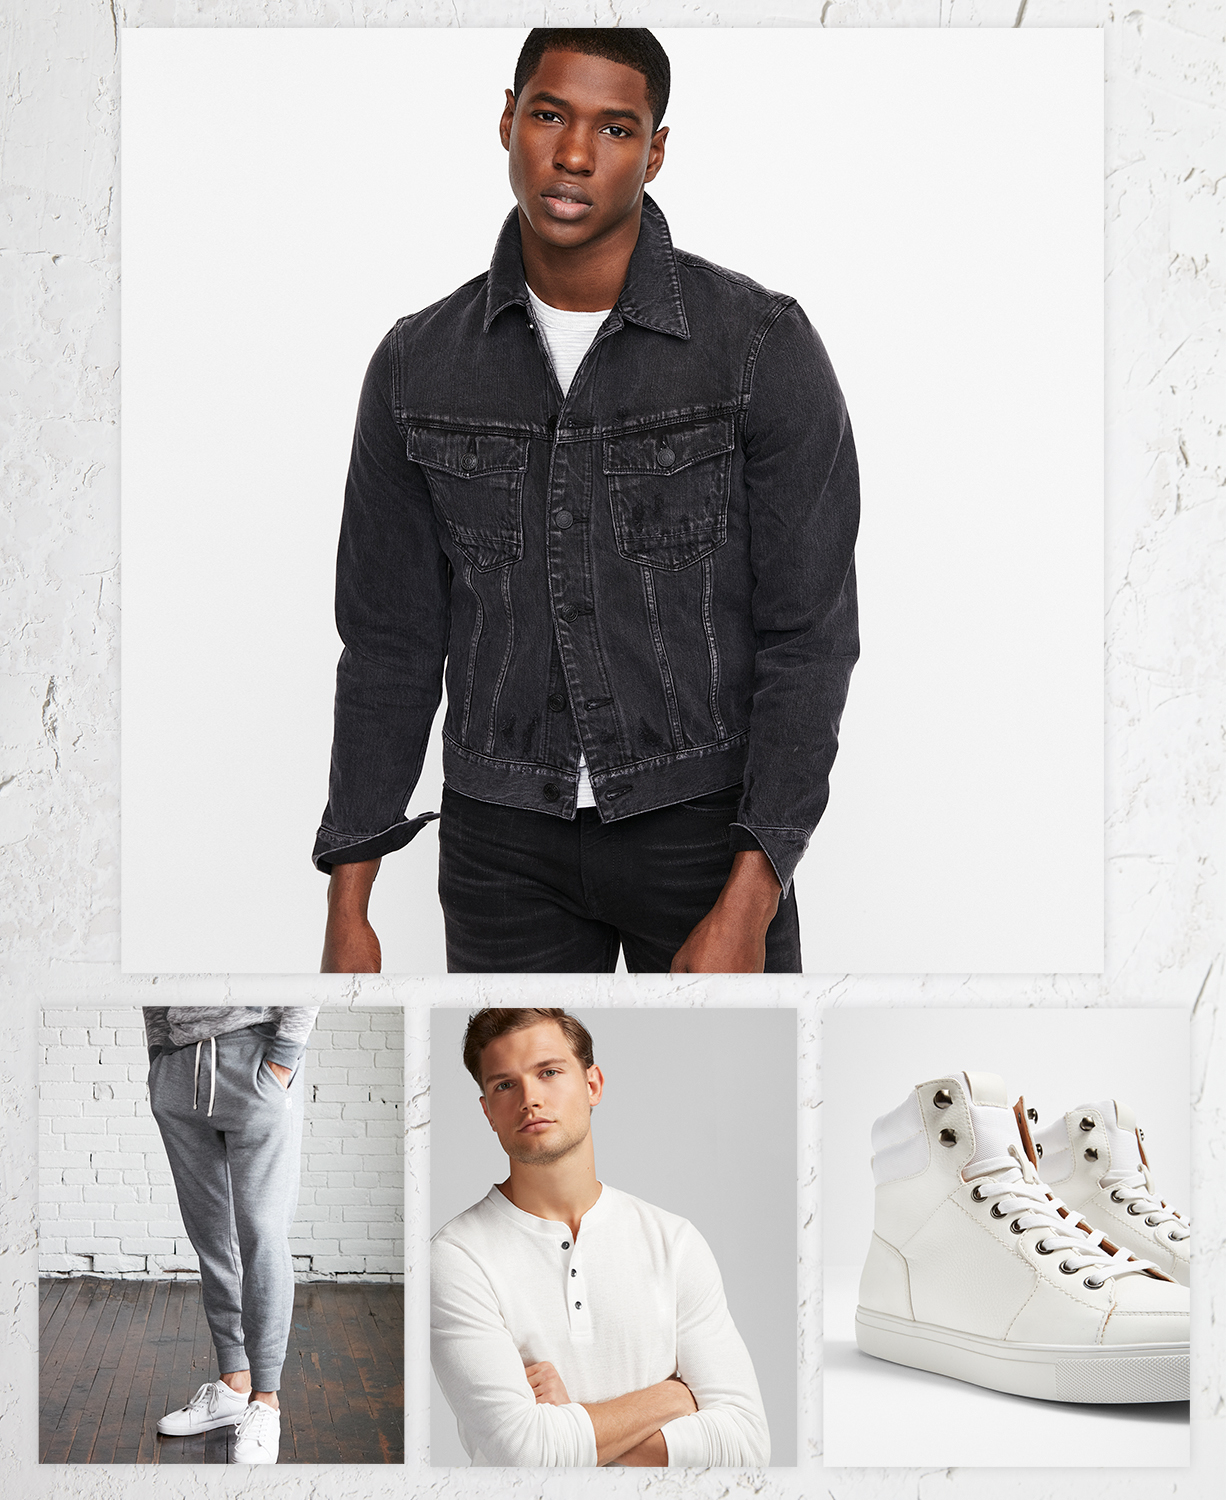 mens-black-denim-jacket-joggers-white-henley-white-high-top-sneakers